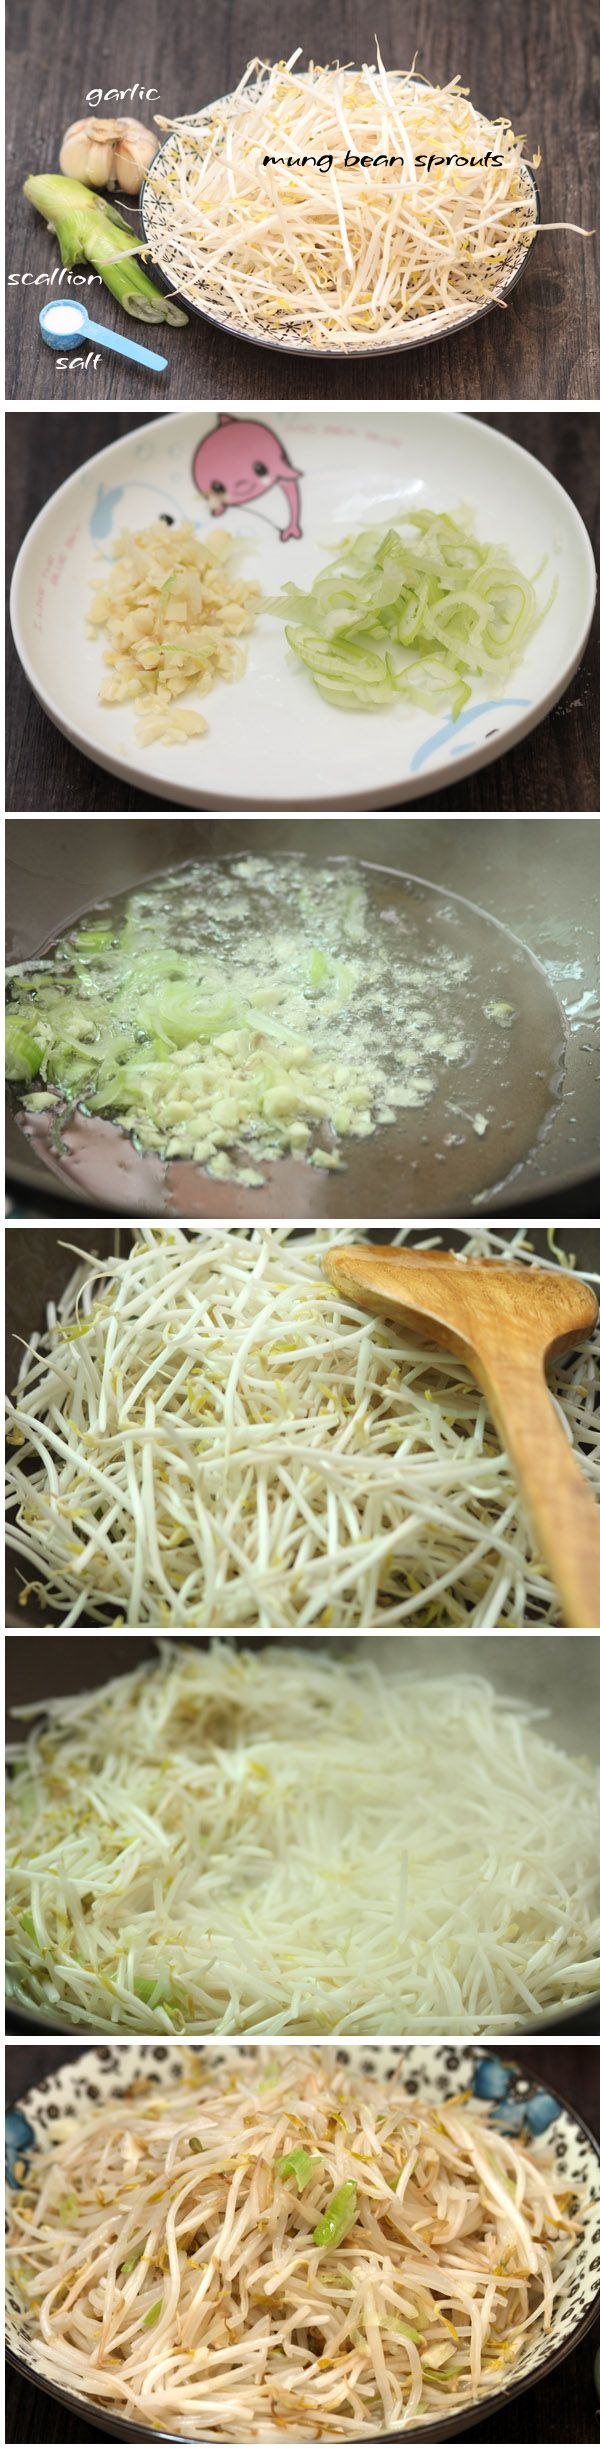 Many many people add into vegetarian ,Because they have request for health.Chinese stir fry mung bean sprouts is a quick easy recipe of healthy recipes.